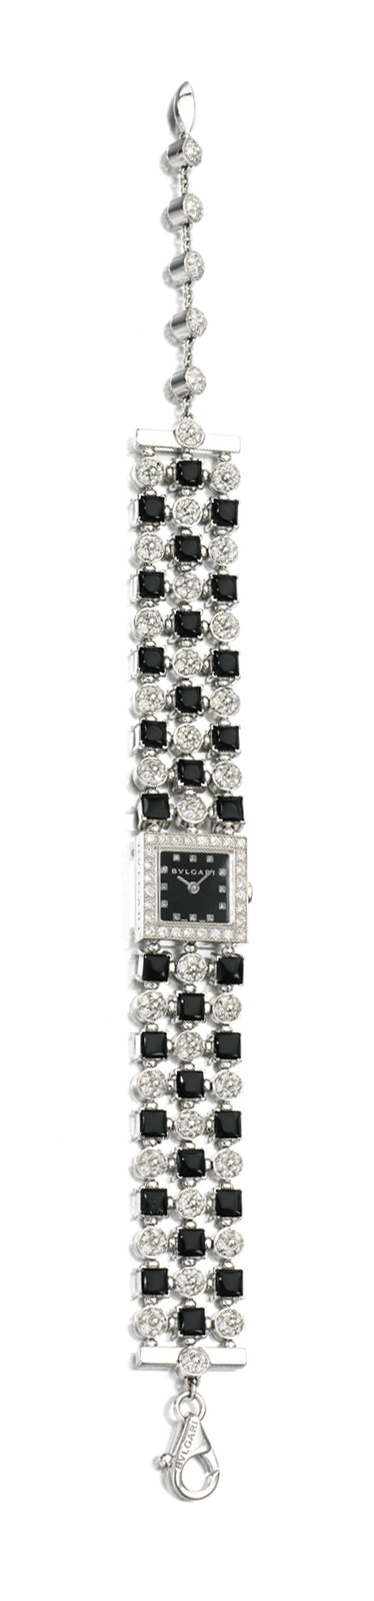 ONYX AND DIAMOND WRISTWATCH, 'LUCEA', BULGARI.  The square dial applied with diamond dot indicators framed with a  brilliant-cut diamond set bezel, to a bracelet of square onyx and brilliant-cut diamond set circular links, length approximately 200mm, signed Bulgari Lucea and numbered.